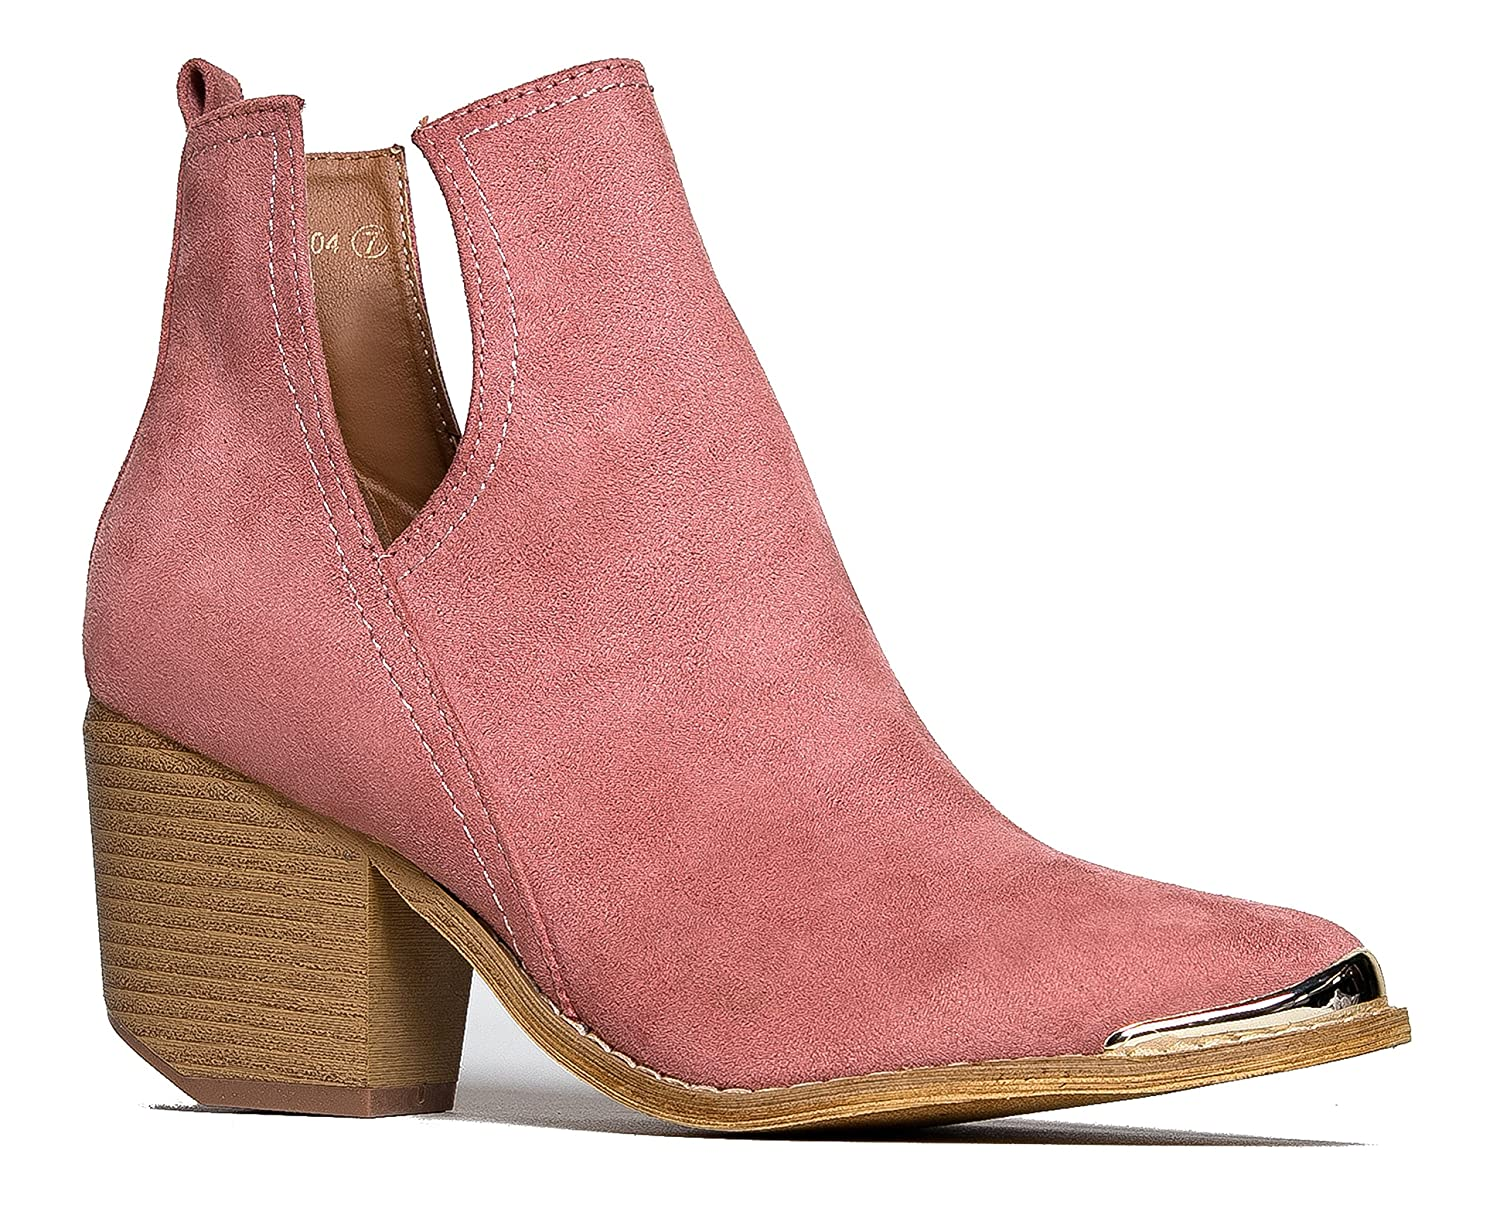 J. Adams Tess Western Bootie - Slip On V-Cut Out Metal Tipped Stacked Heel Boot B01MQGH5GV 6 B(M) US|Rose Pink